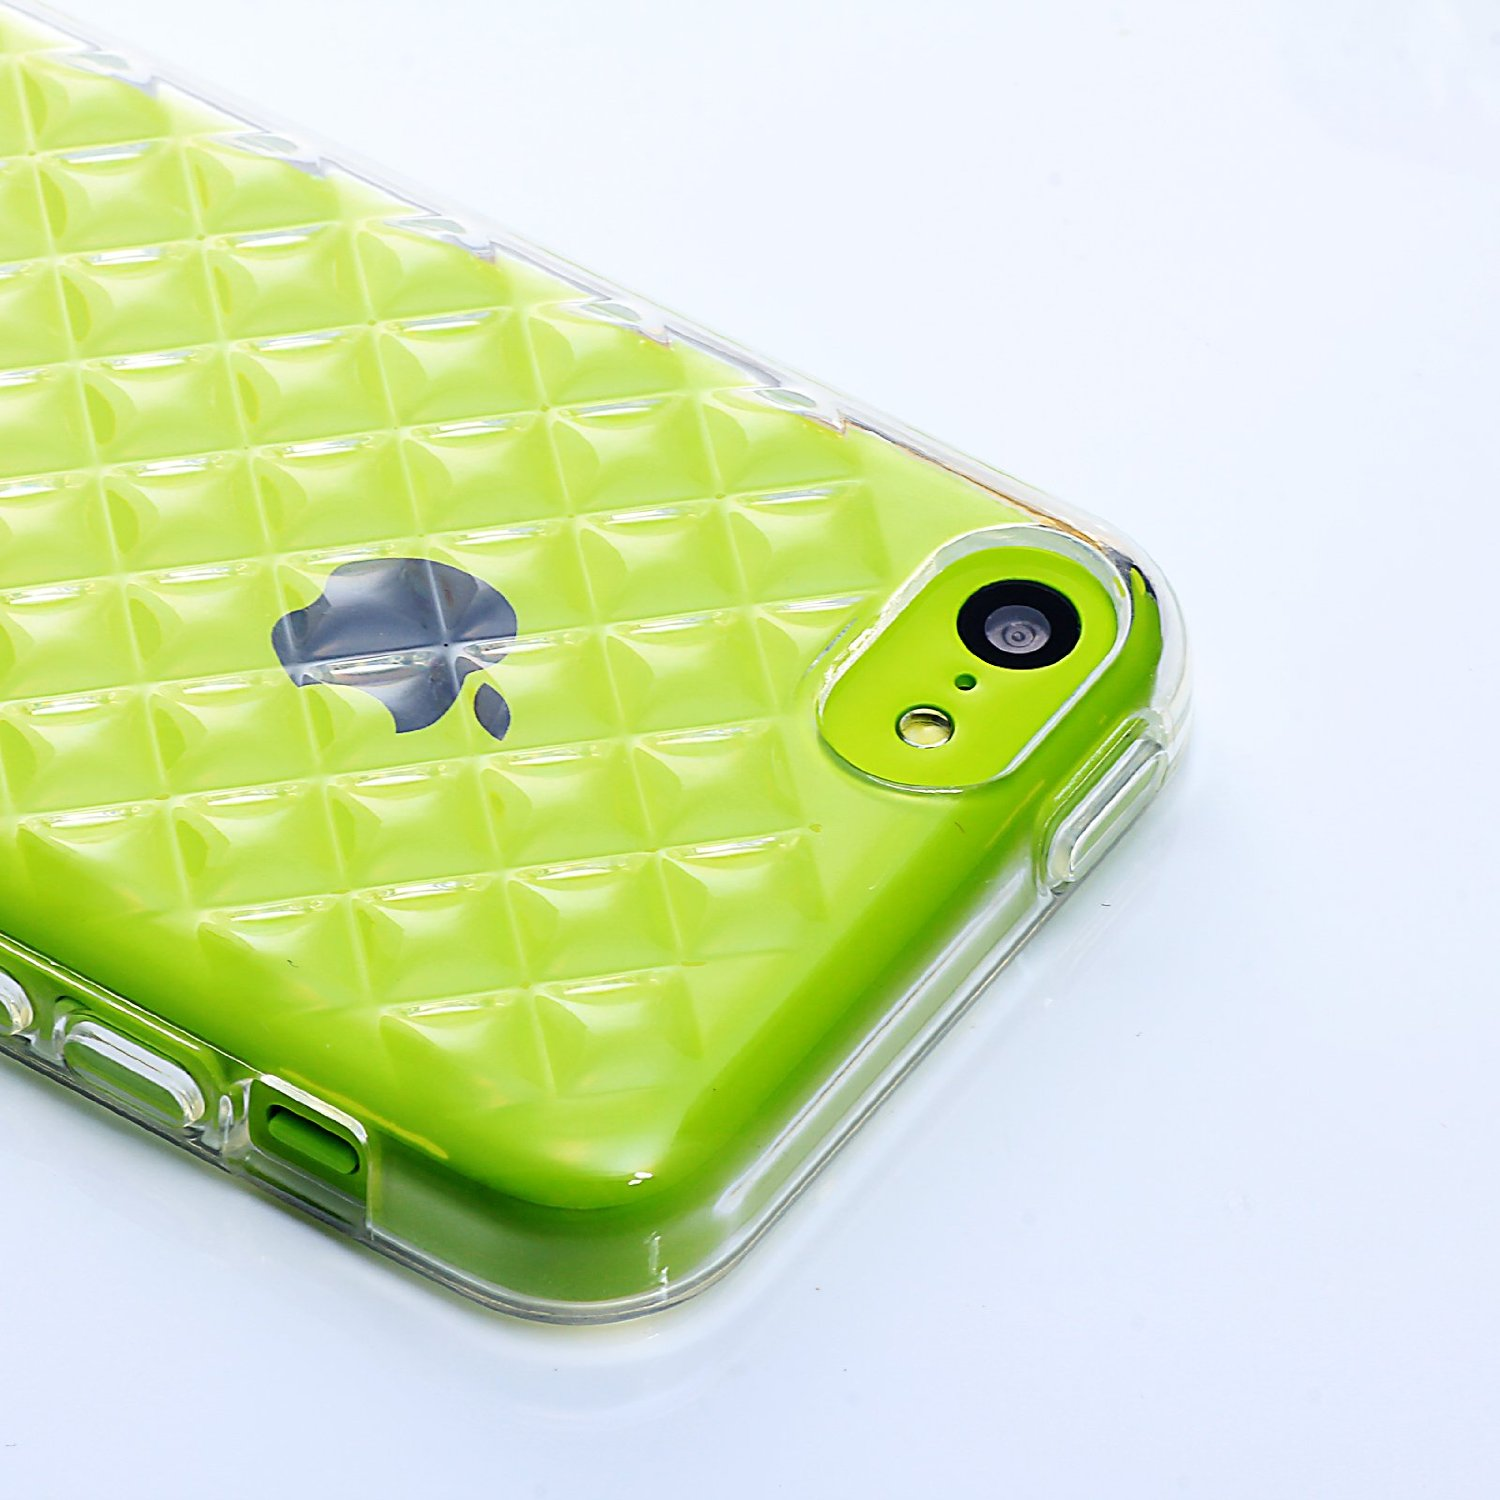 Iphone 5c Green Case Clear : www.galleryhip.com - The Hippest Pics